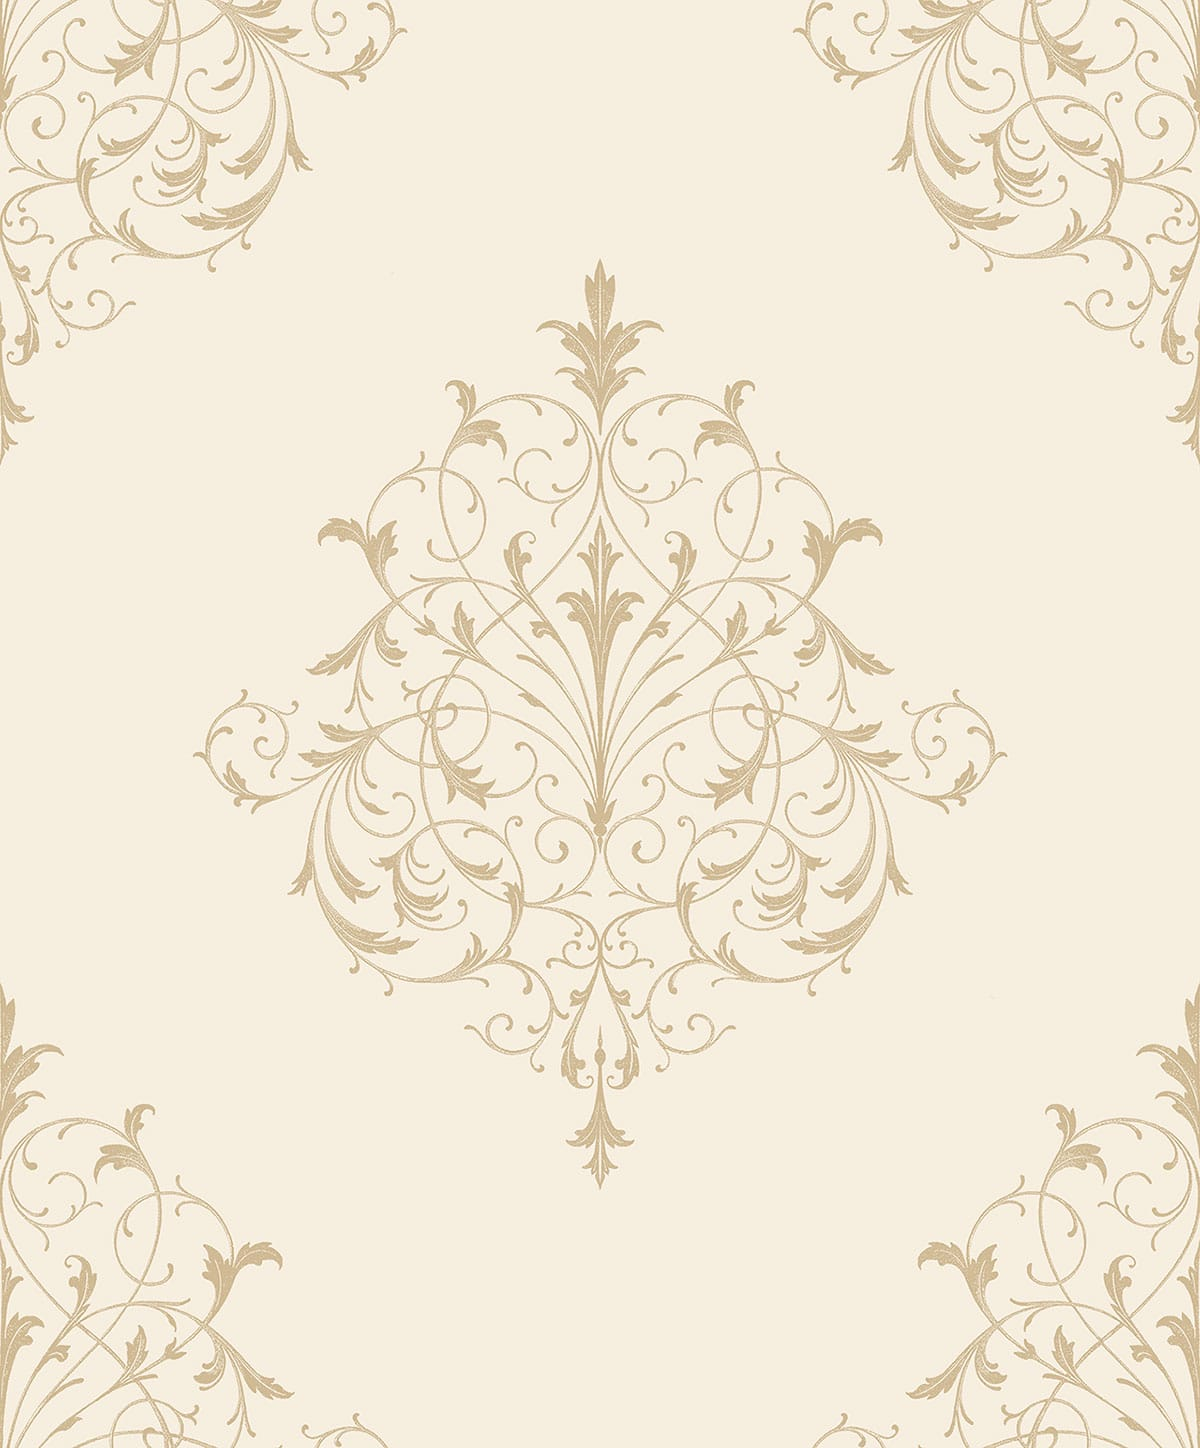 REGENCY FILIGREE GOLD A PV00205